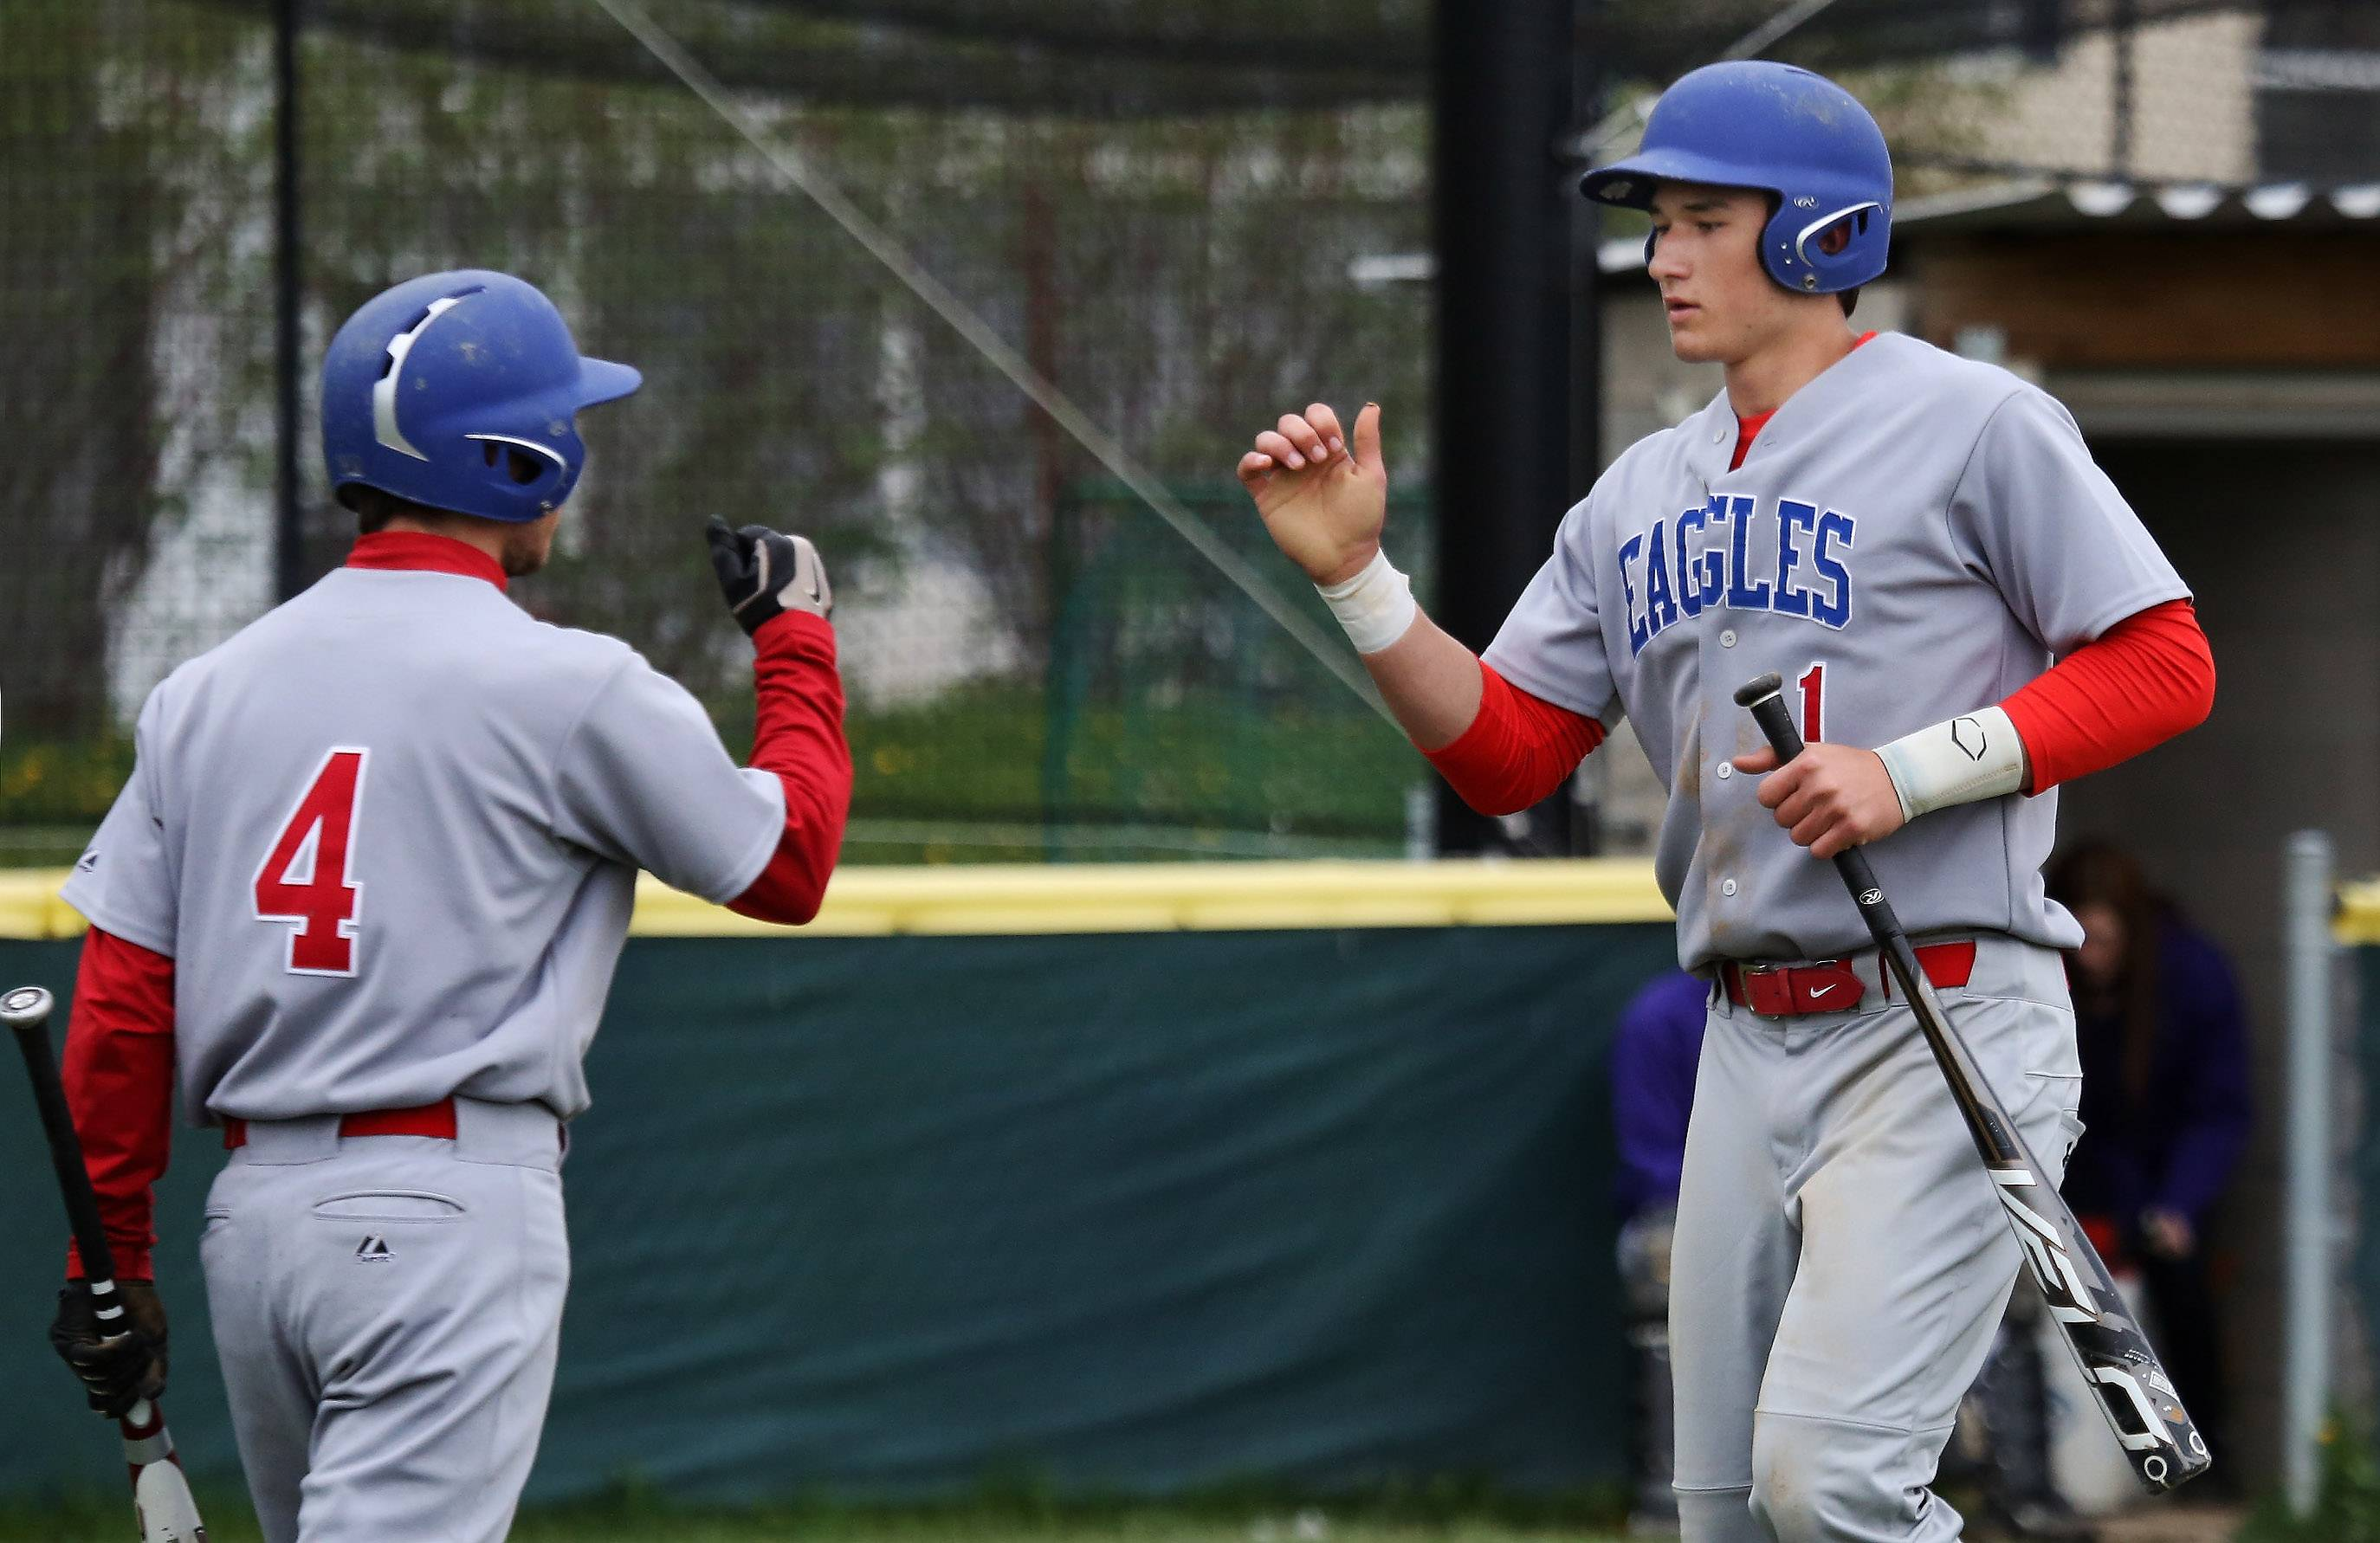 Lakes' Ethan Sage, right, is congratulated by Brad Borzick after scoring the first run in the second inning on the Eagles' NSC Prairie game at Wauconda.